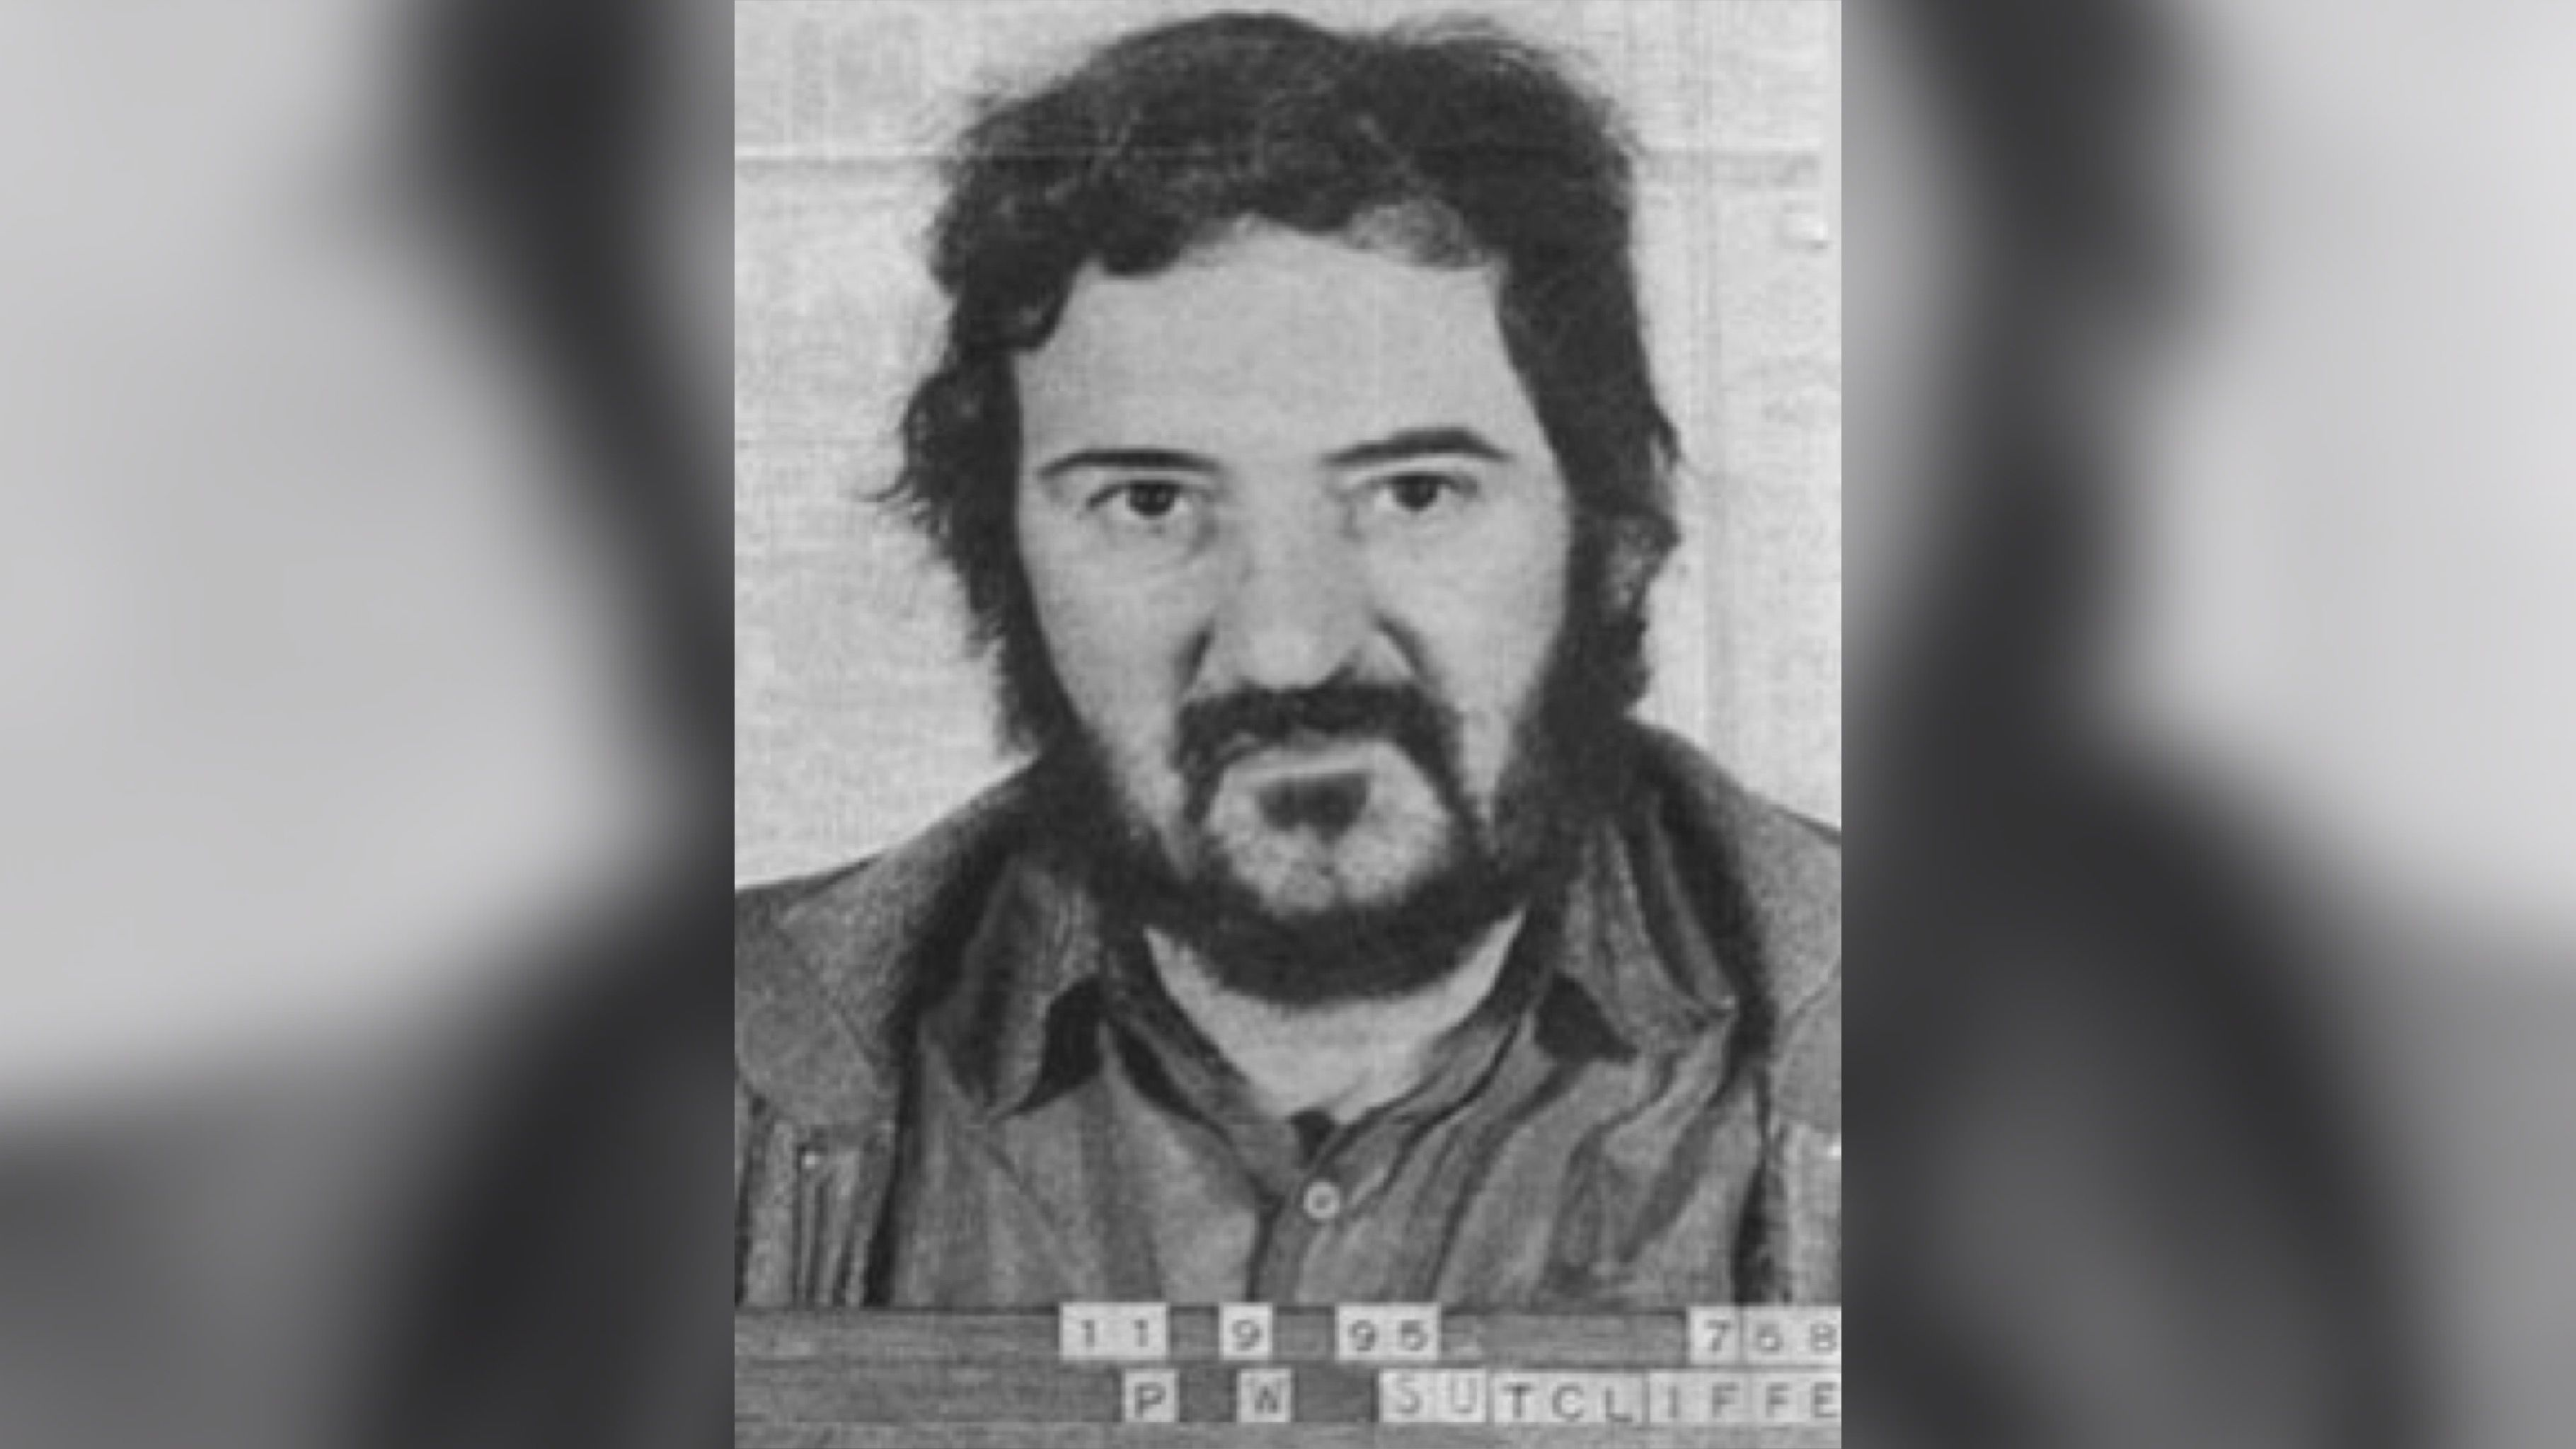 Image may contain: Yorkshire Ripper documentary, Netflix, Peter Sutcliffe, murder, true crime, doc, Yorkshire Ripper, real life, mugshot, now, 2019, Poster, Advertisement, Photography, Photo, Portrait, Head, Text, Human, Face, Person